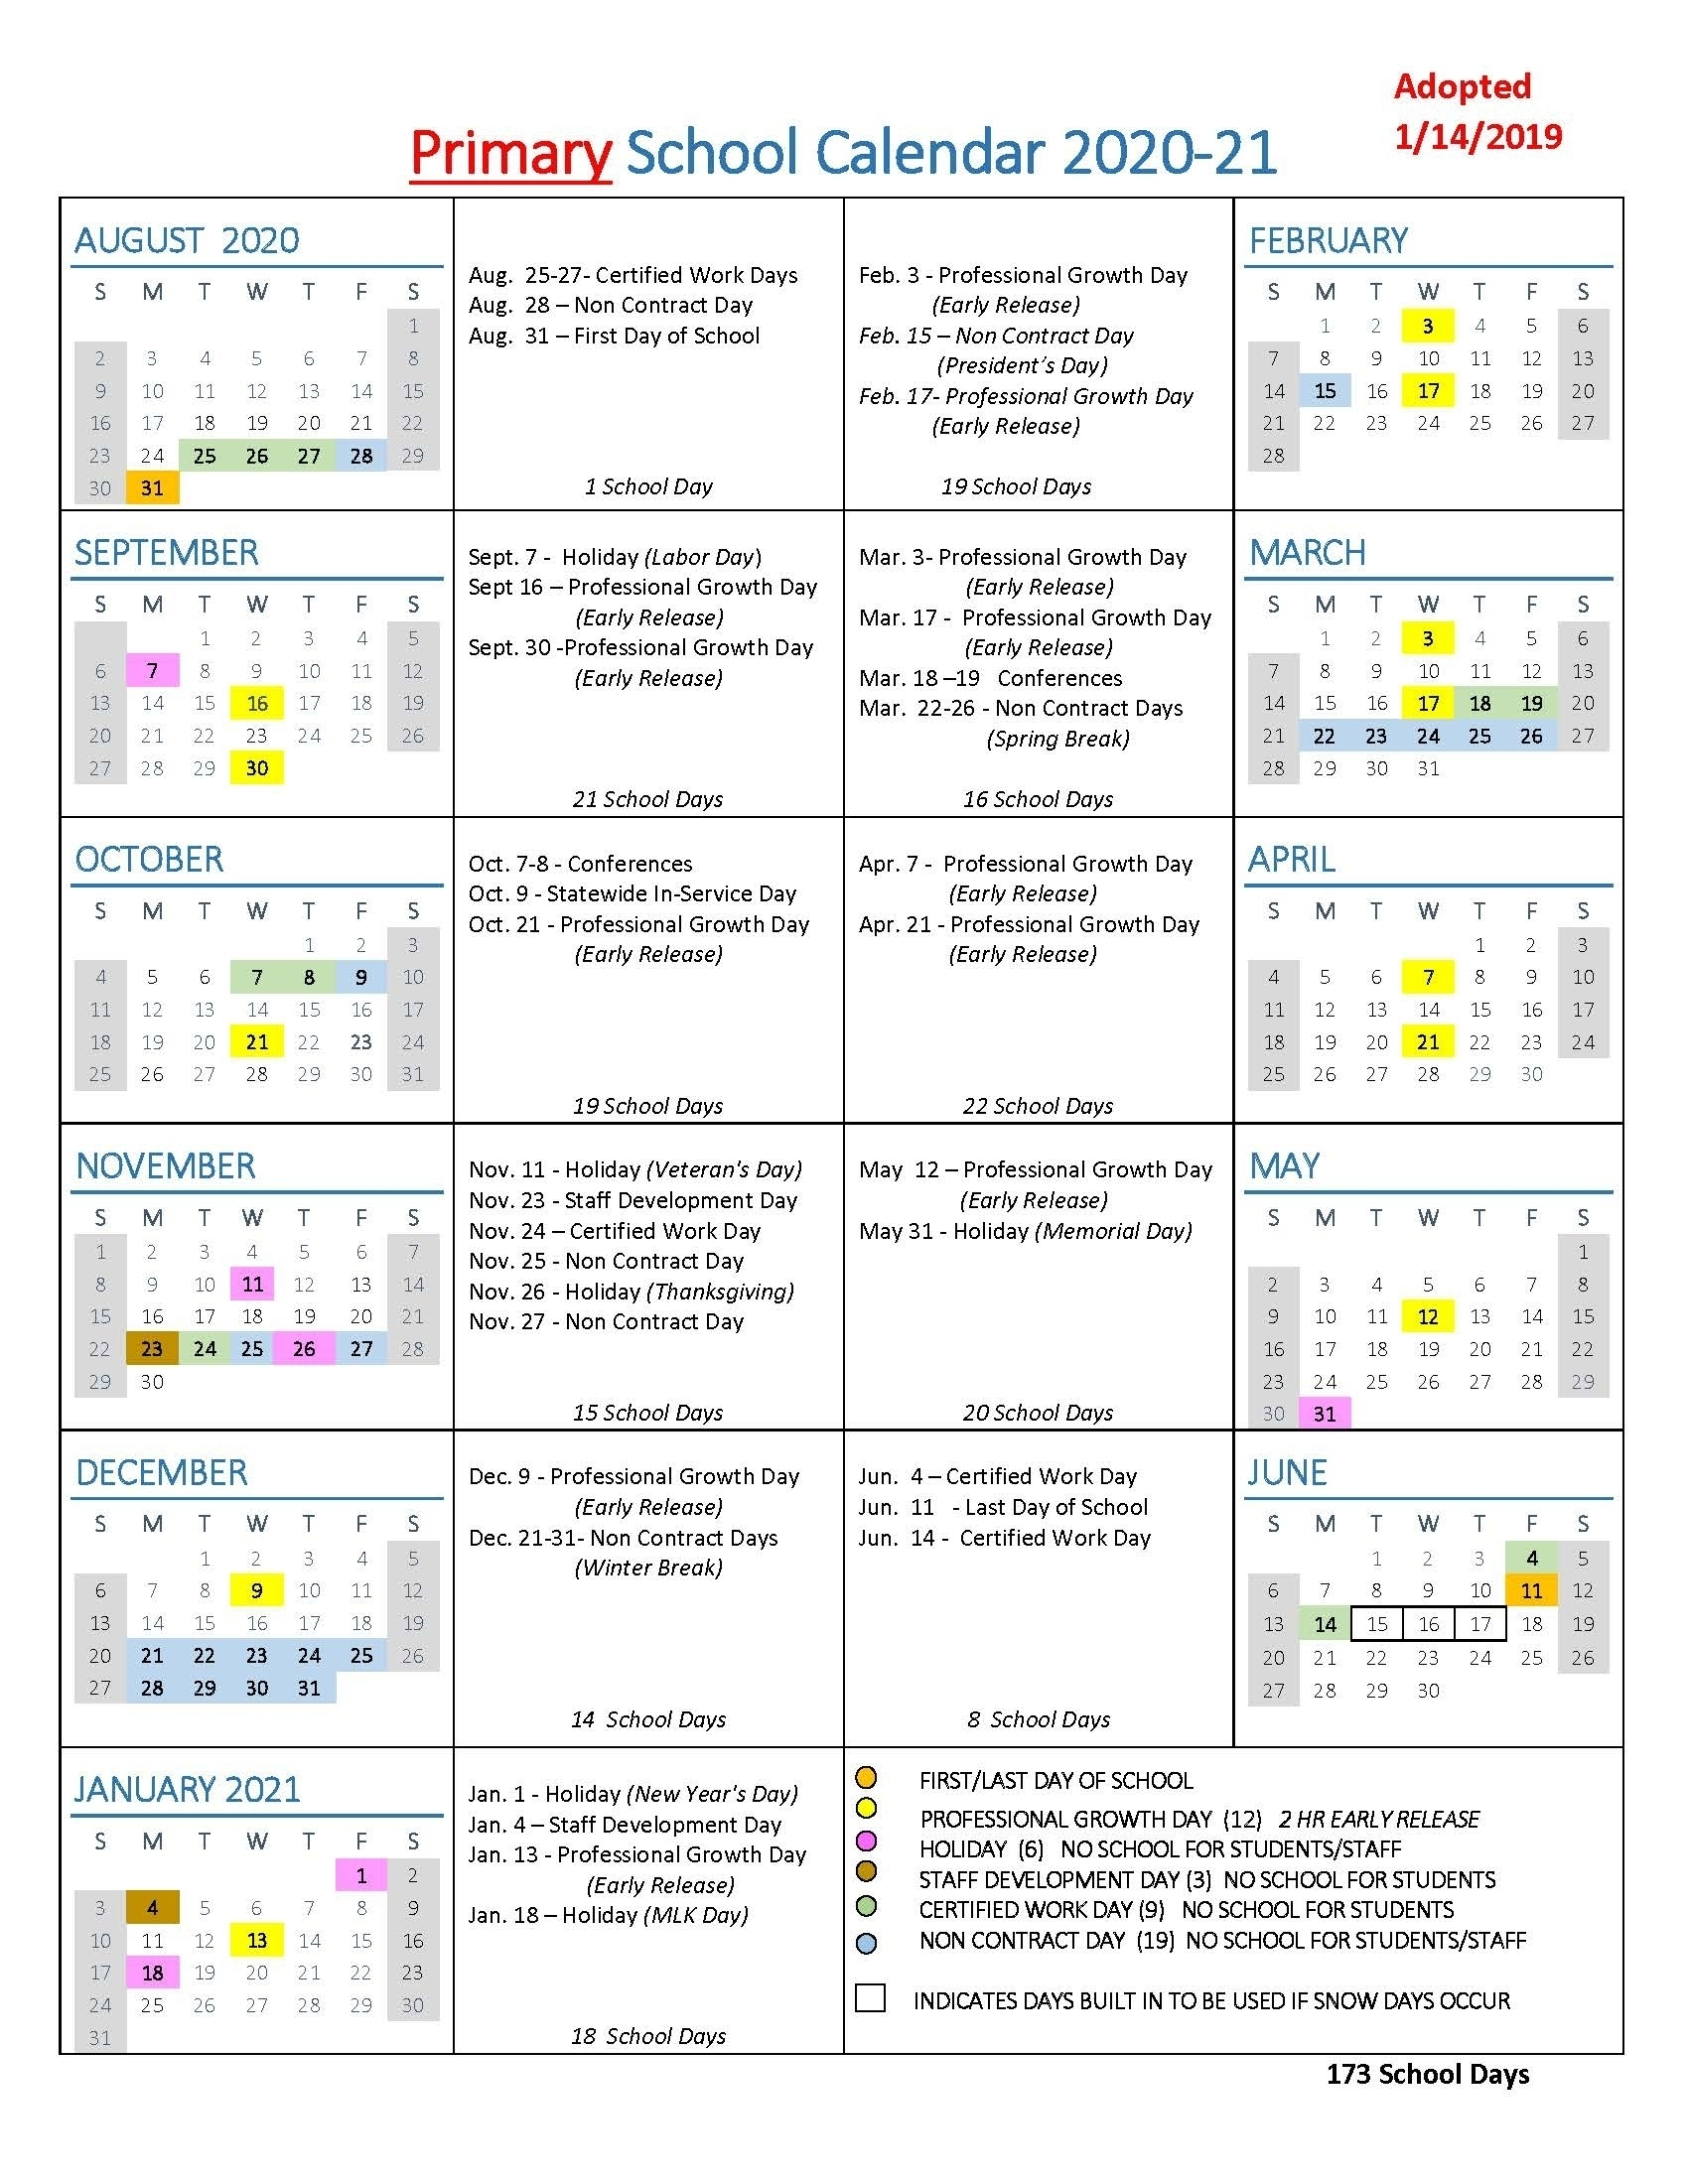 Calendar With All The Special Days In 2020 - Calendar pertaining to Special Days For 2020 Calender